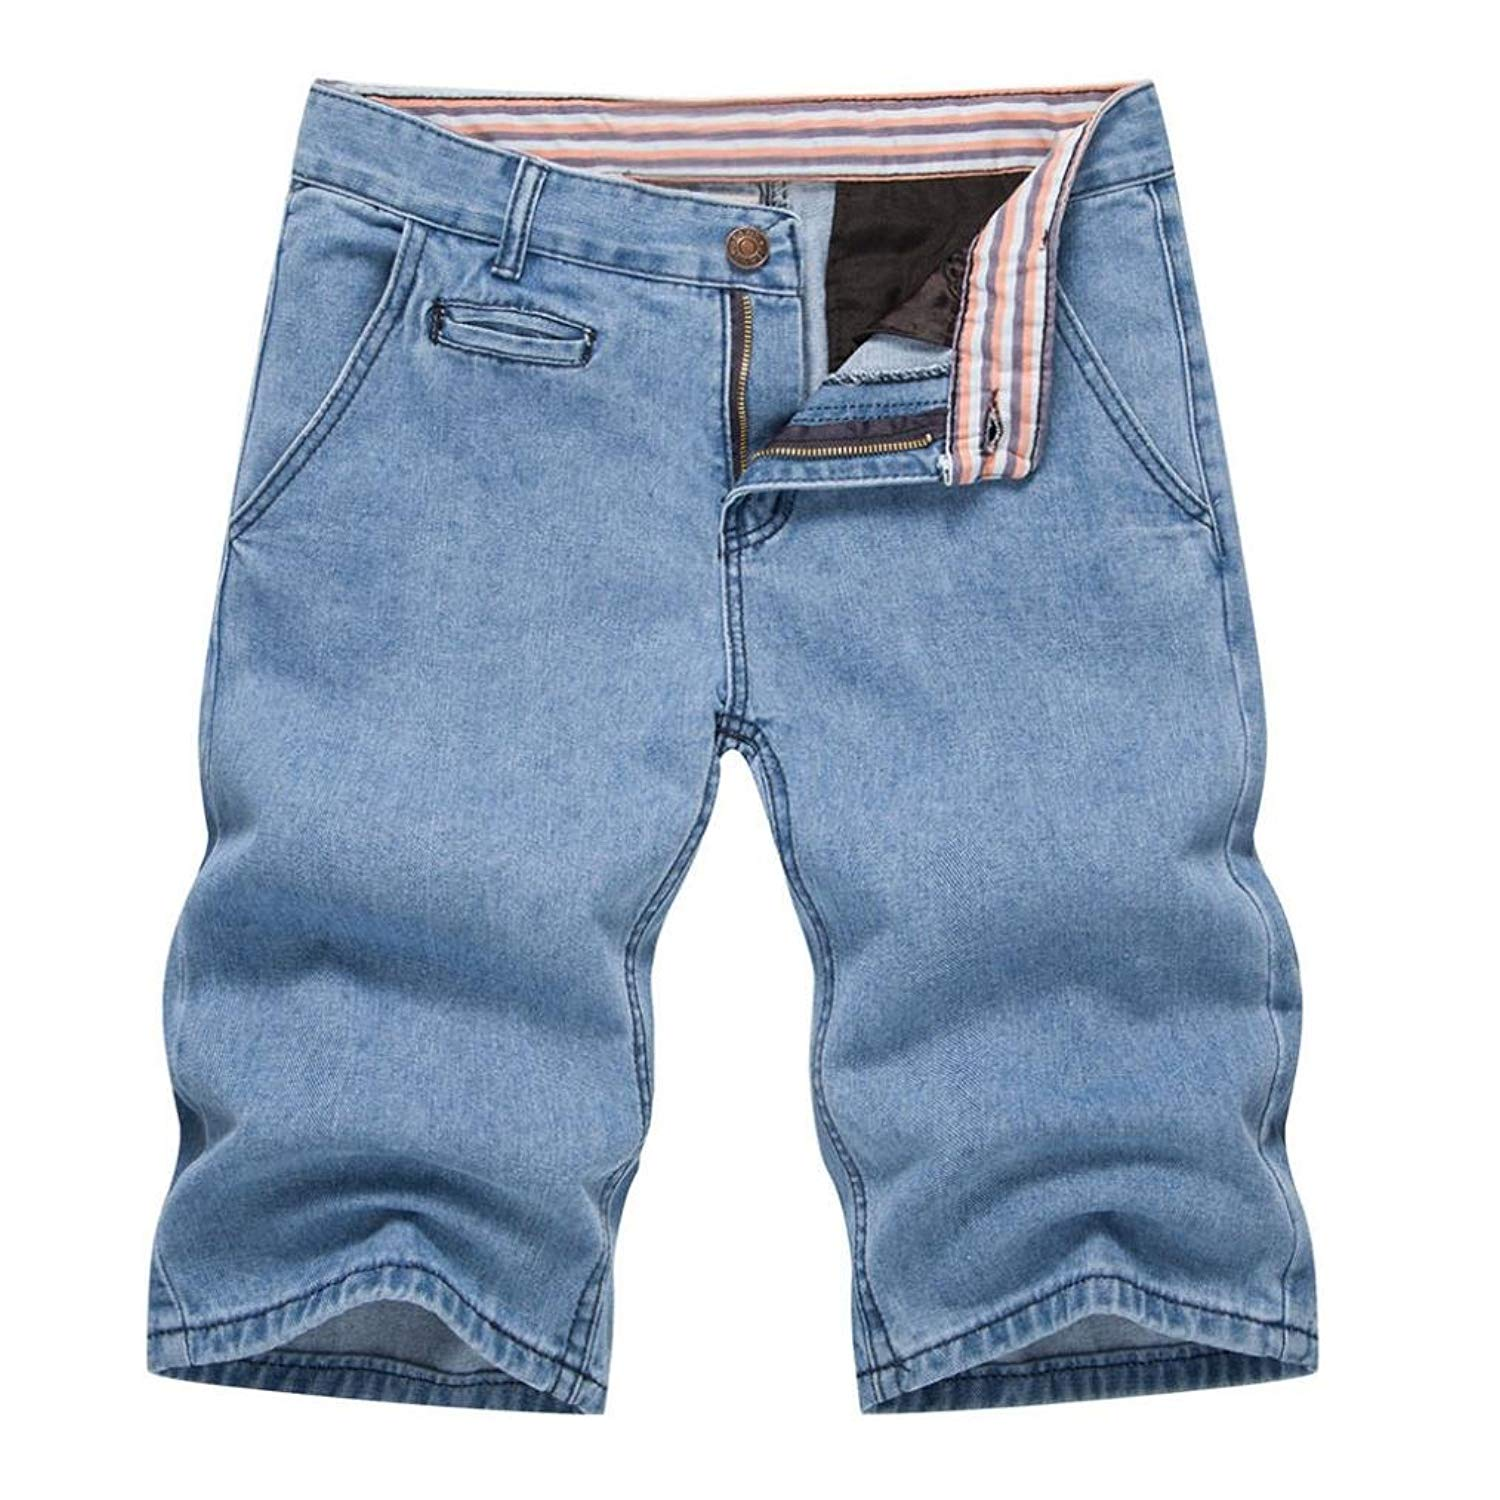 cdcc1b592a2 Get Quotations · RAISINGTOP Mens Teen Boys Summer Denim Shorts Tapered Outfits  Casual Capri Jeans Pants Slim Fit Lounge